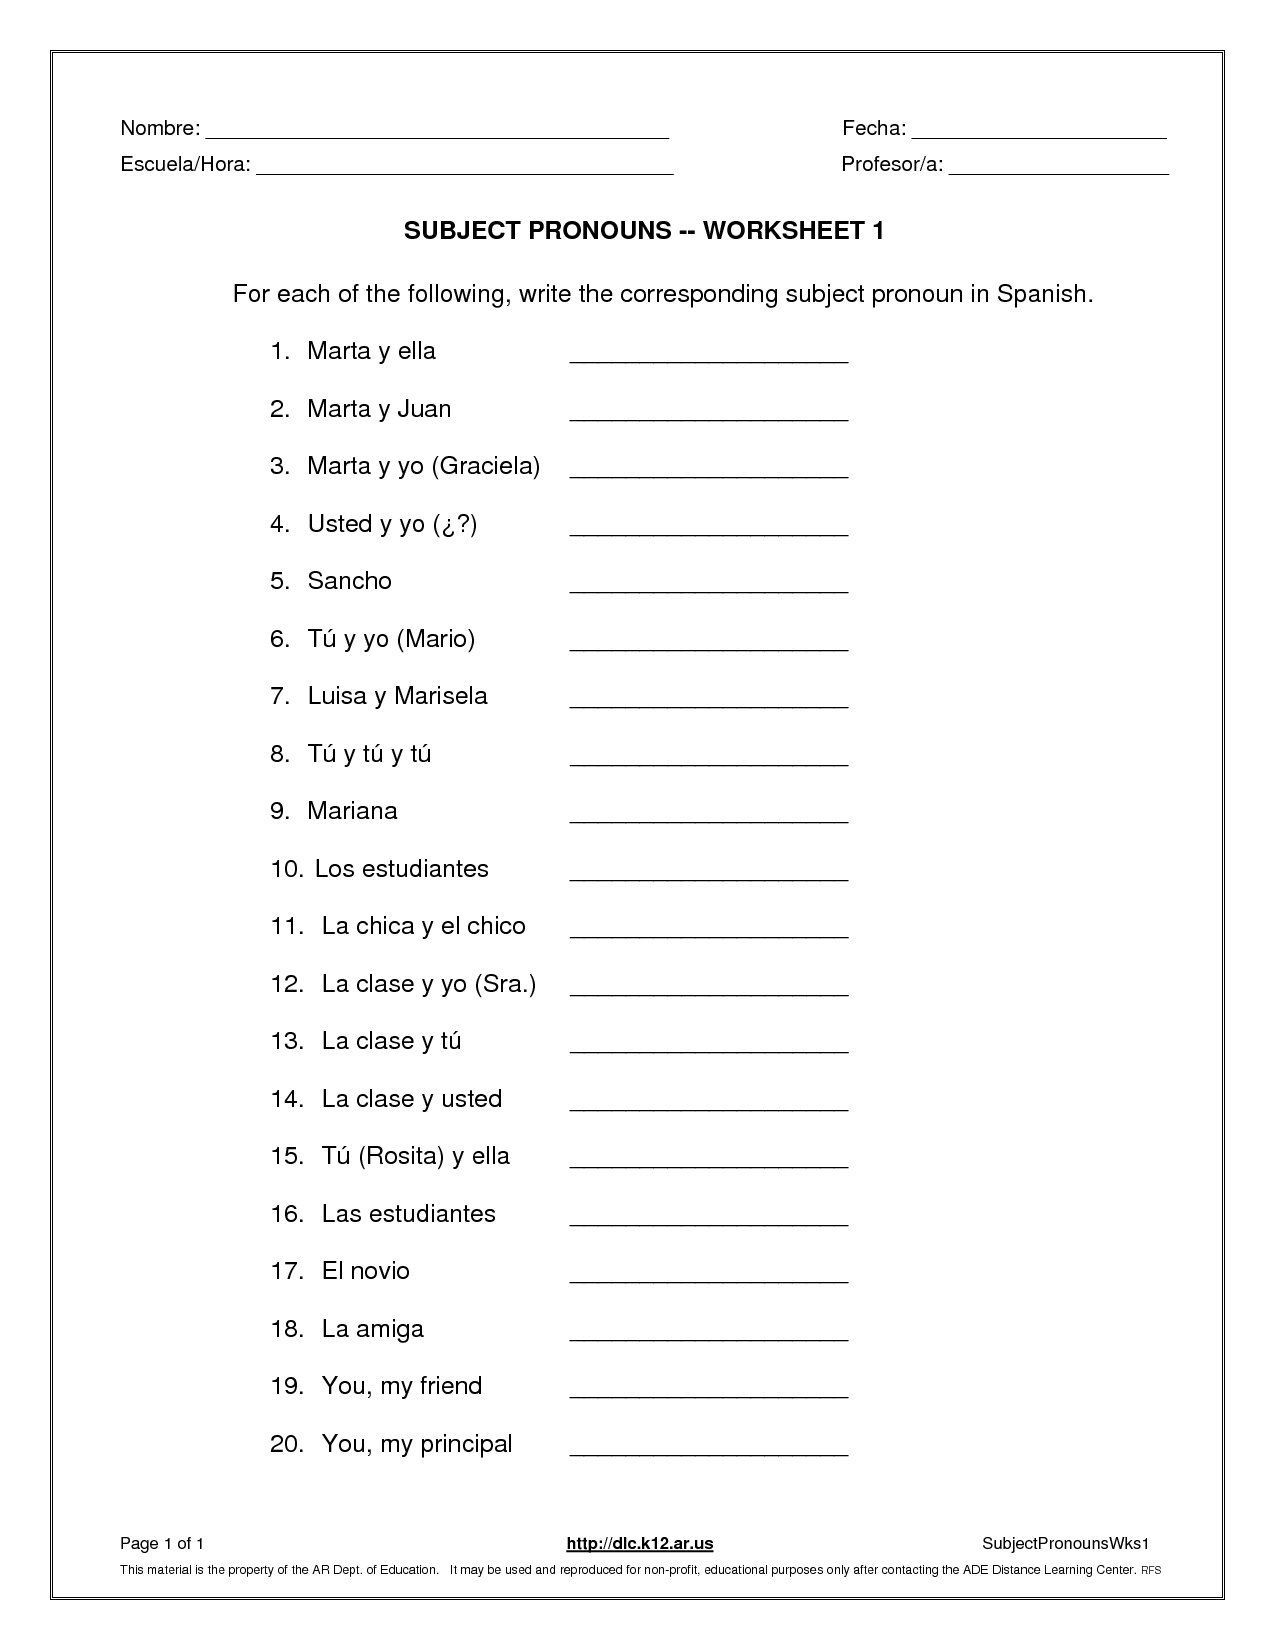 Subject Pronouns Worksheet 1 Spanish Answer Key Check More